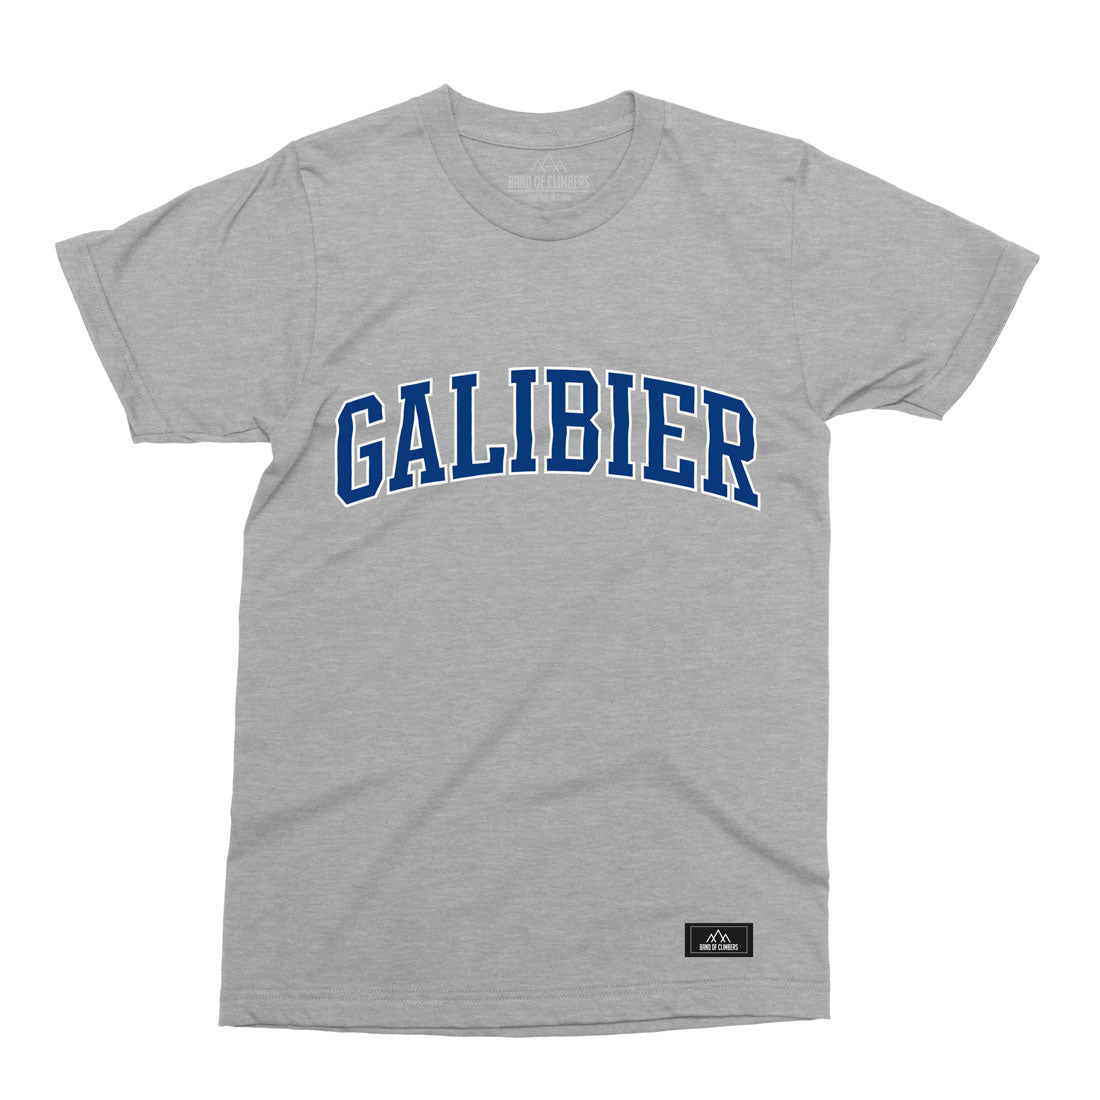 Galibier T-shirt